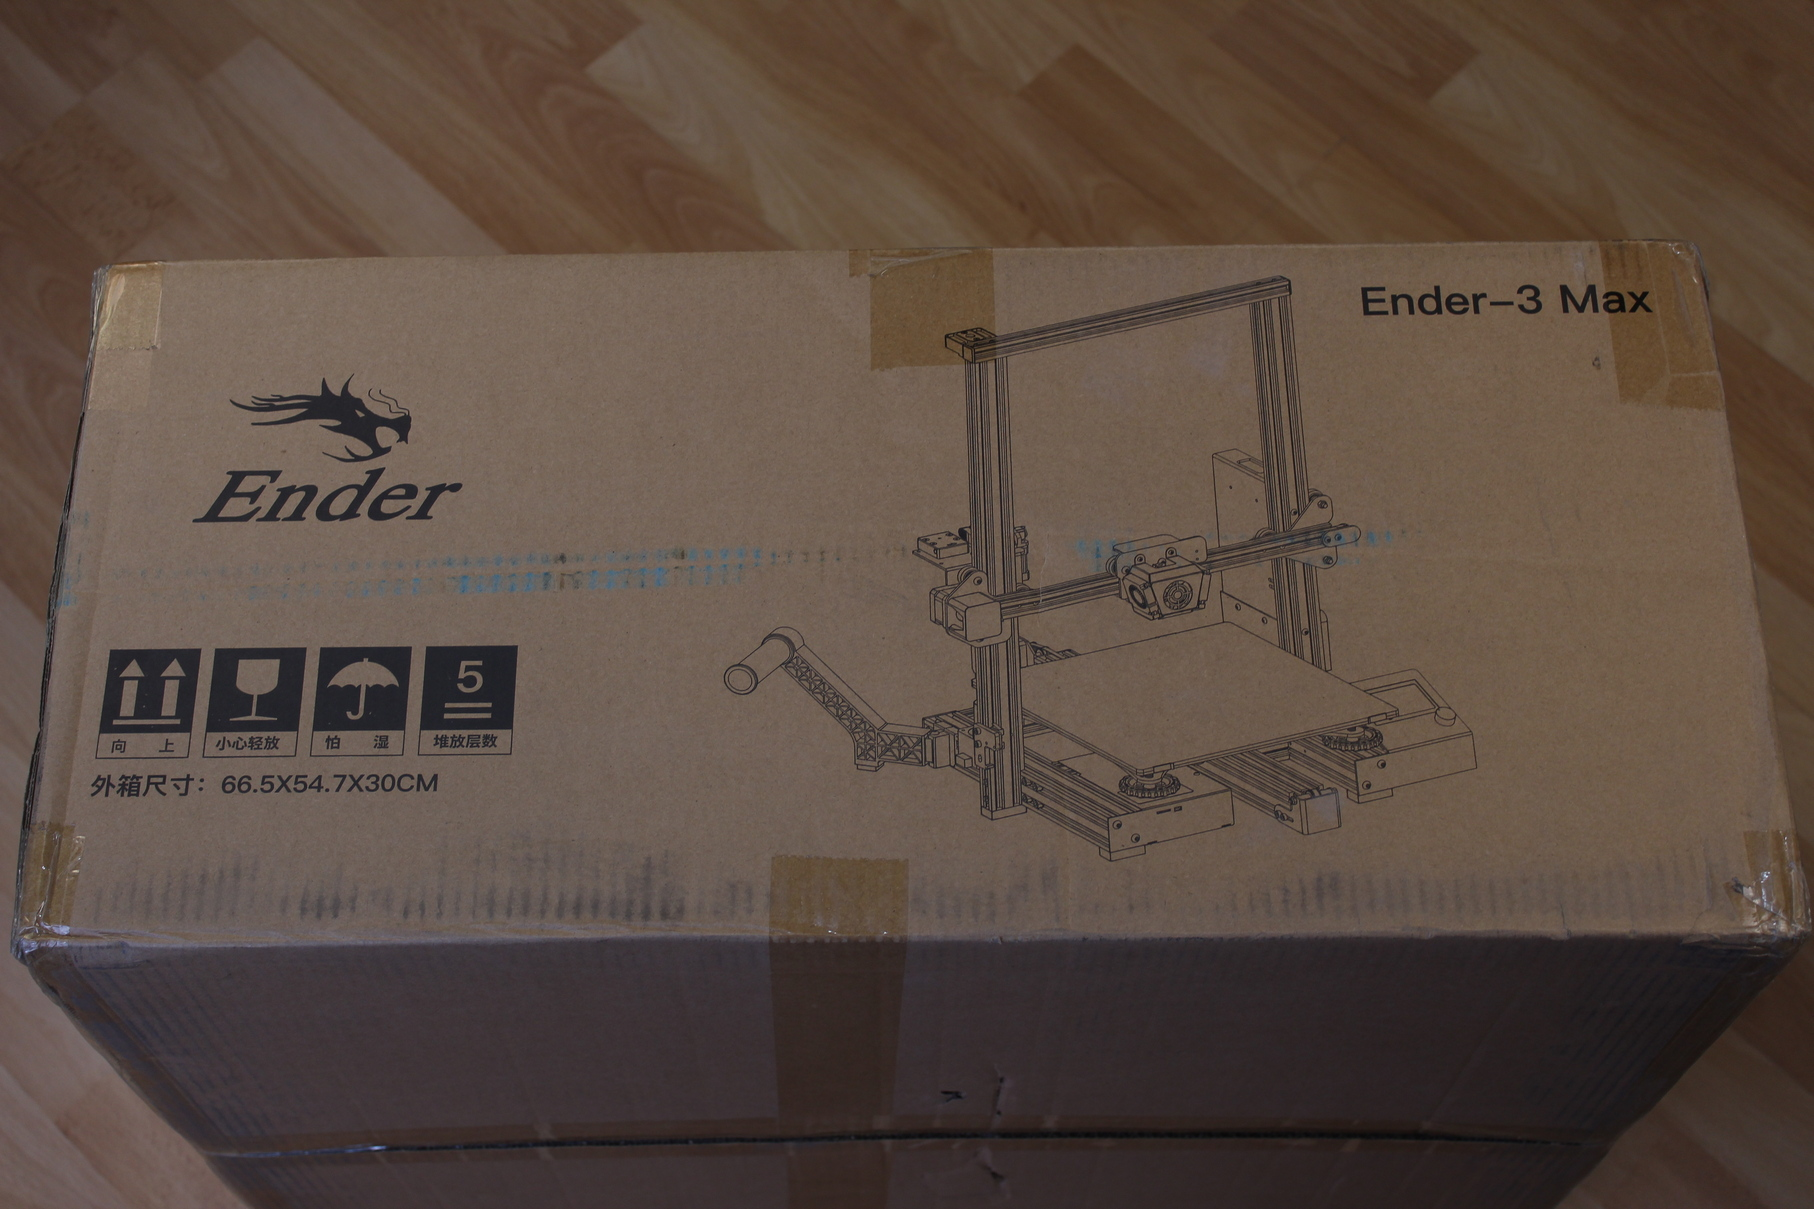 Ender-3-Max-Review-Packaging-3